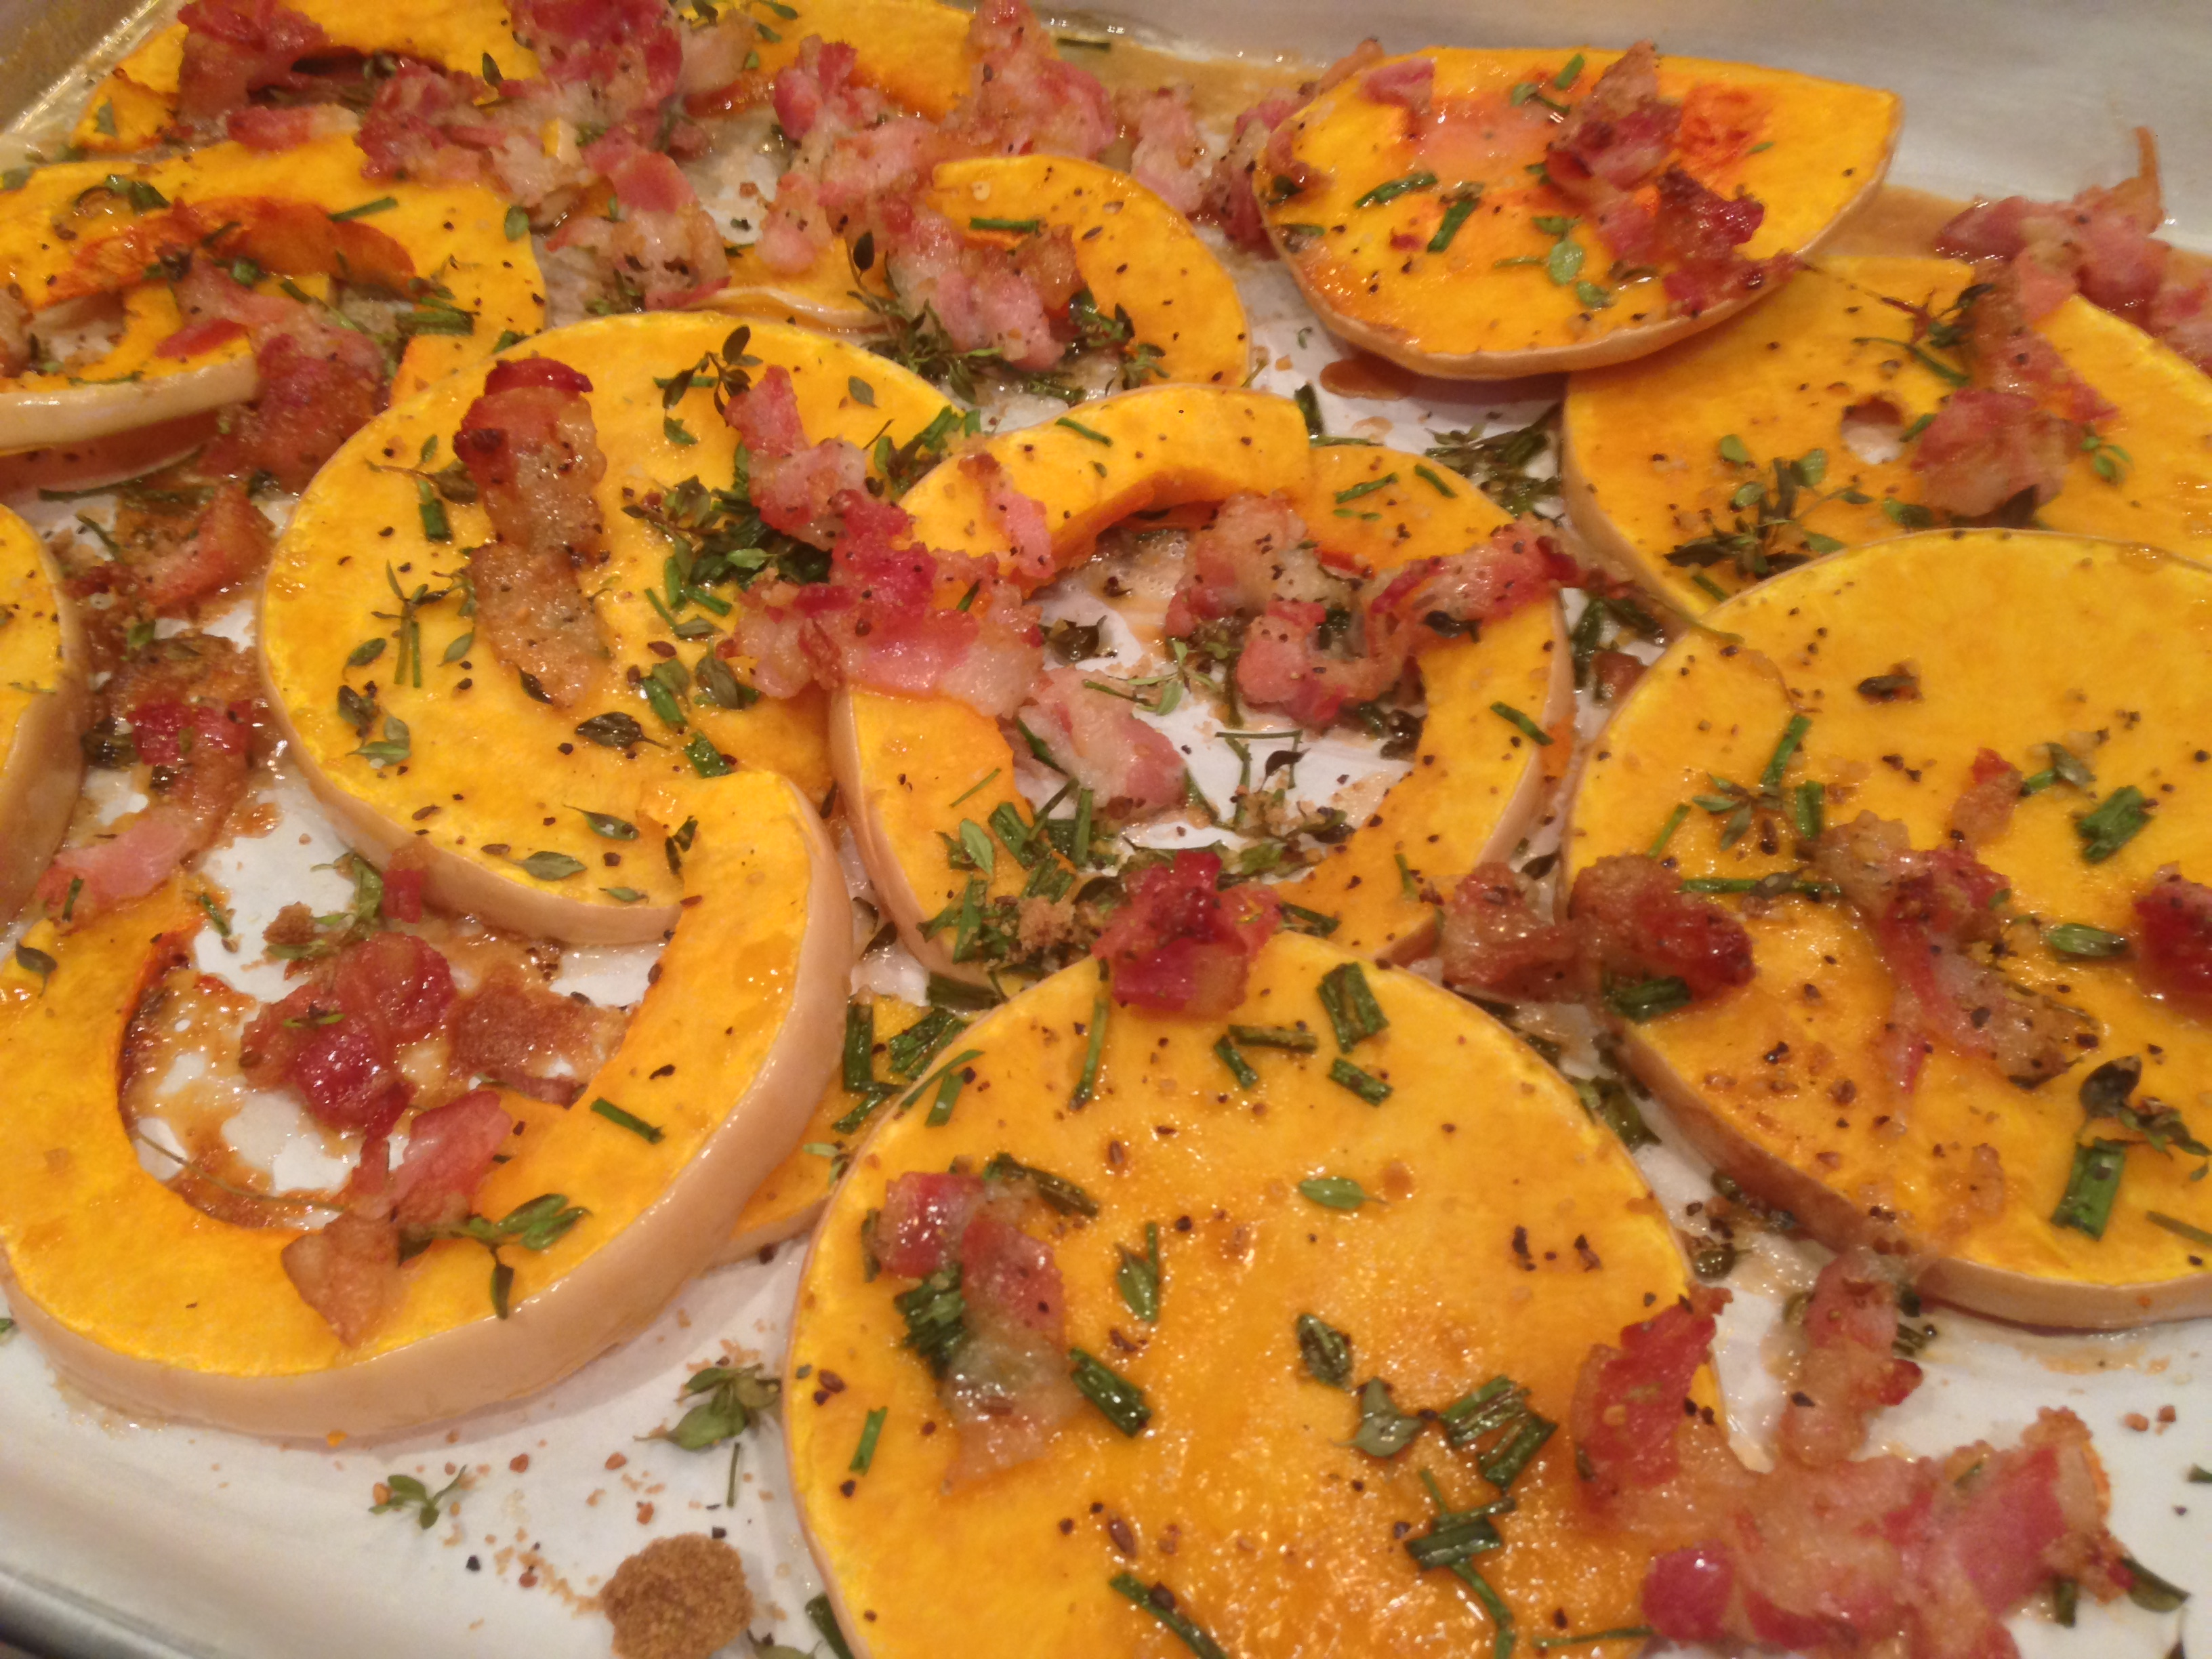 Oven Roasted ((Brown-Sugared)) Butternut Squash with Bacon and Fresh Herbs